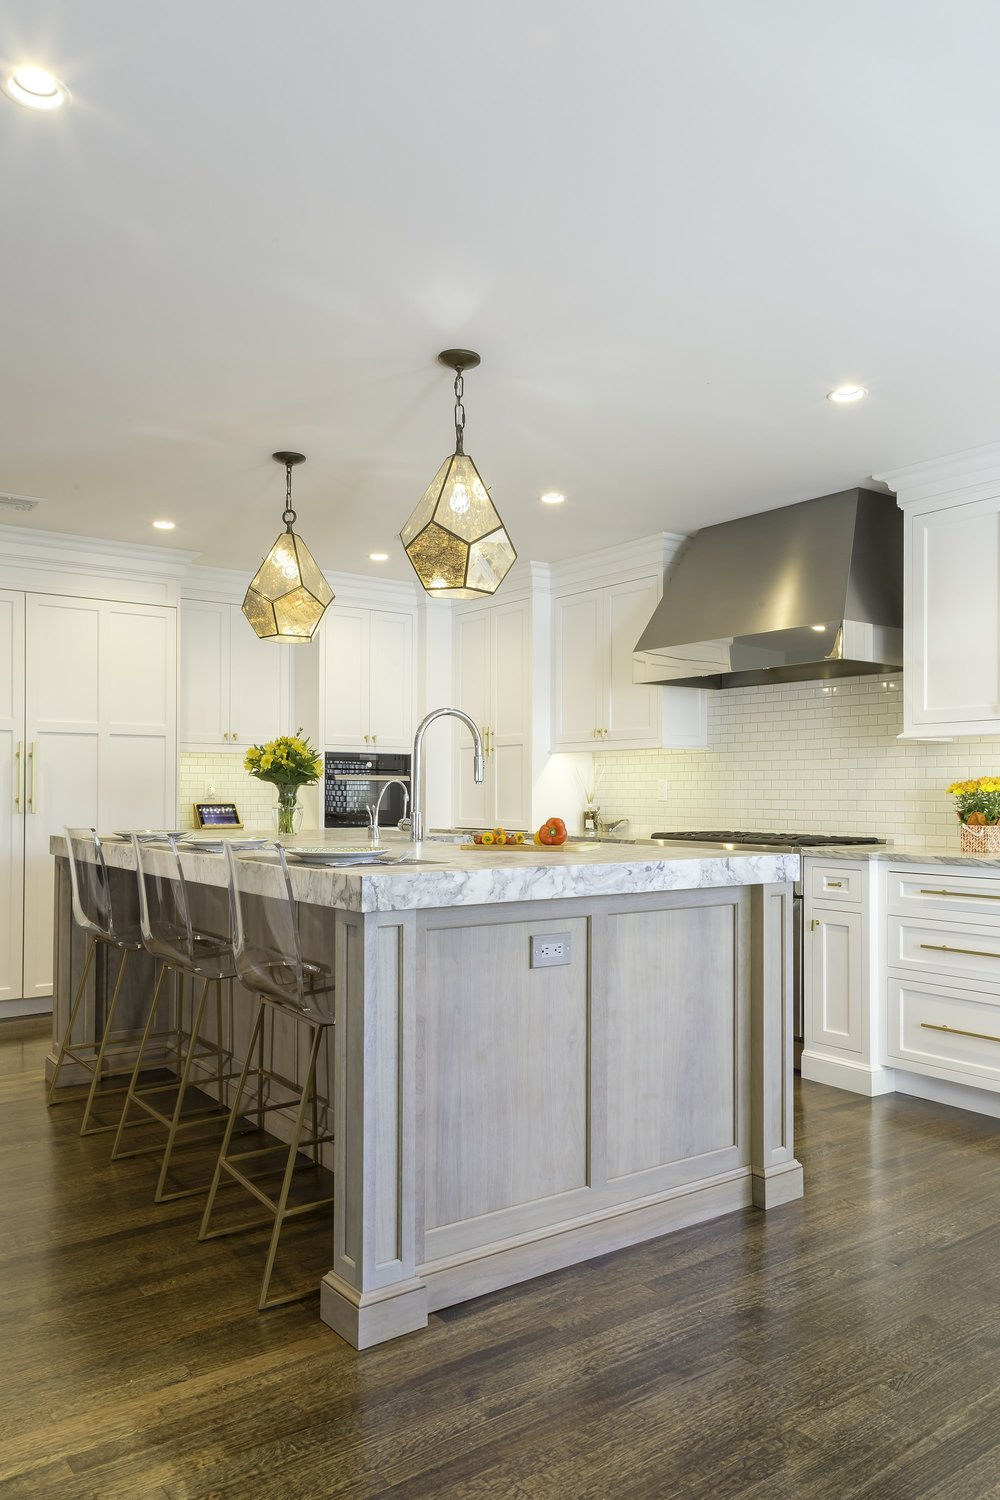 Transitional style kitchen with three counter stool